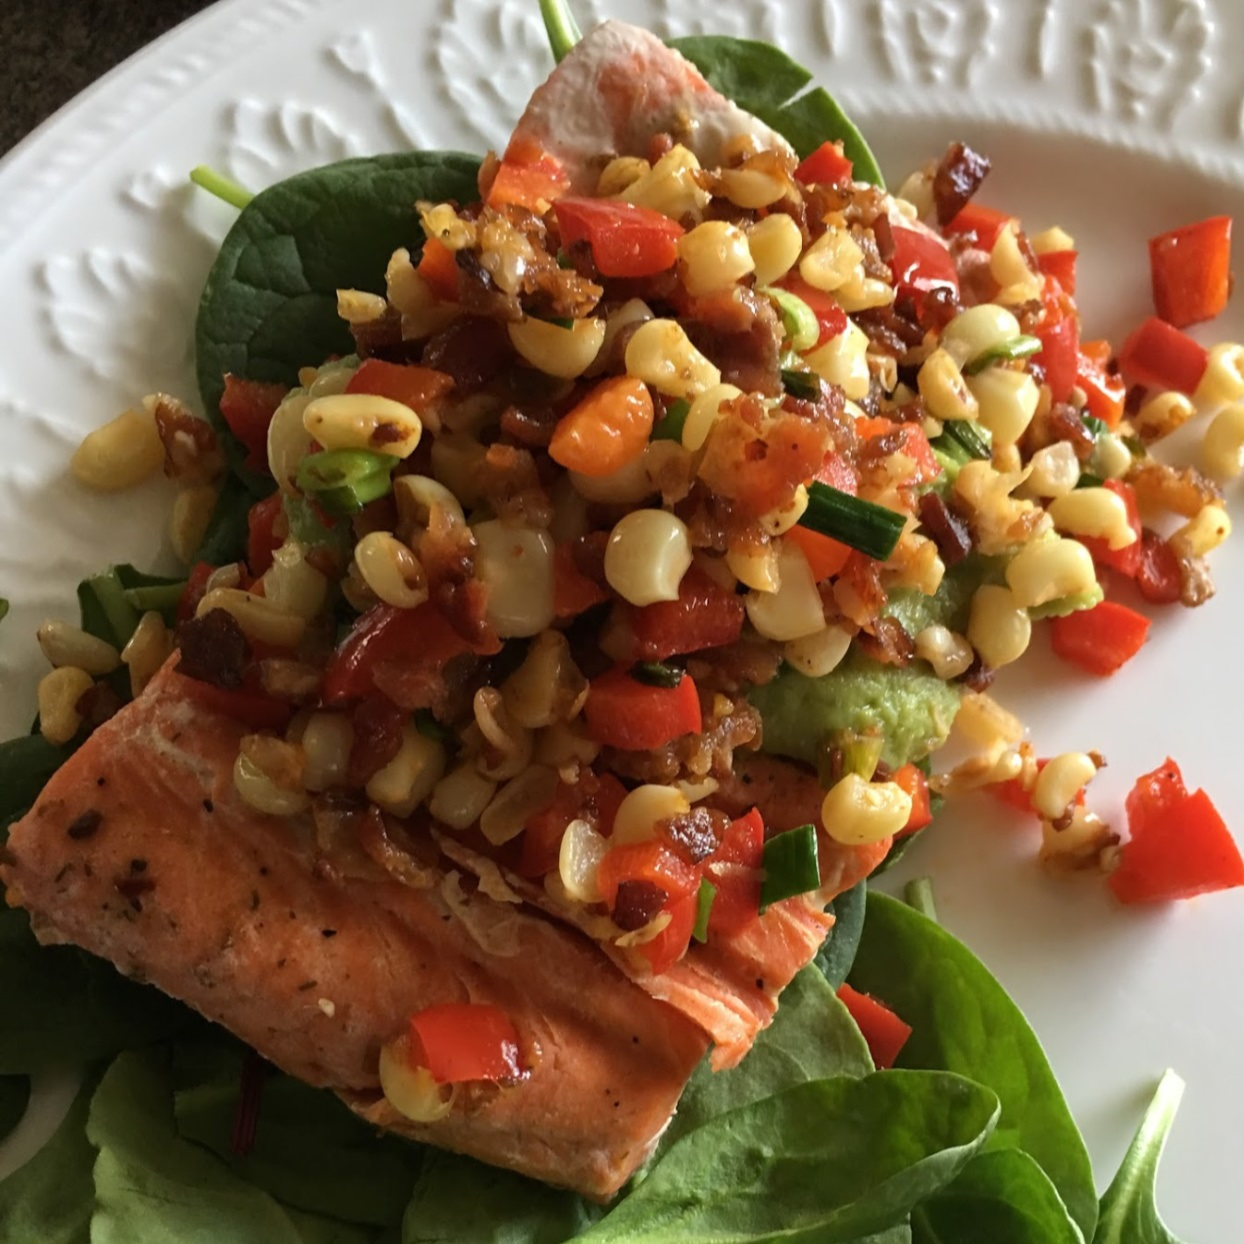 Grilled Salmon with Bacon and Corn Relish recipe served over spinach on a white plate